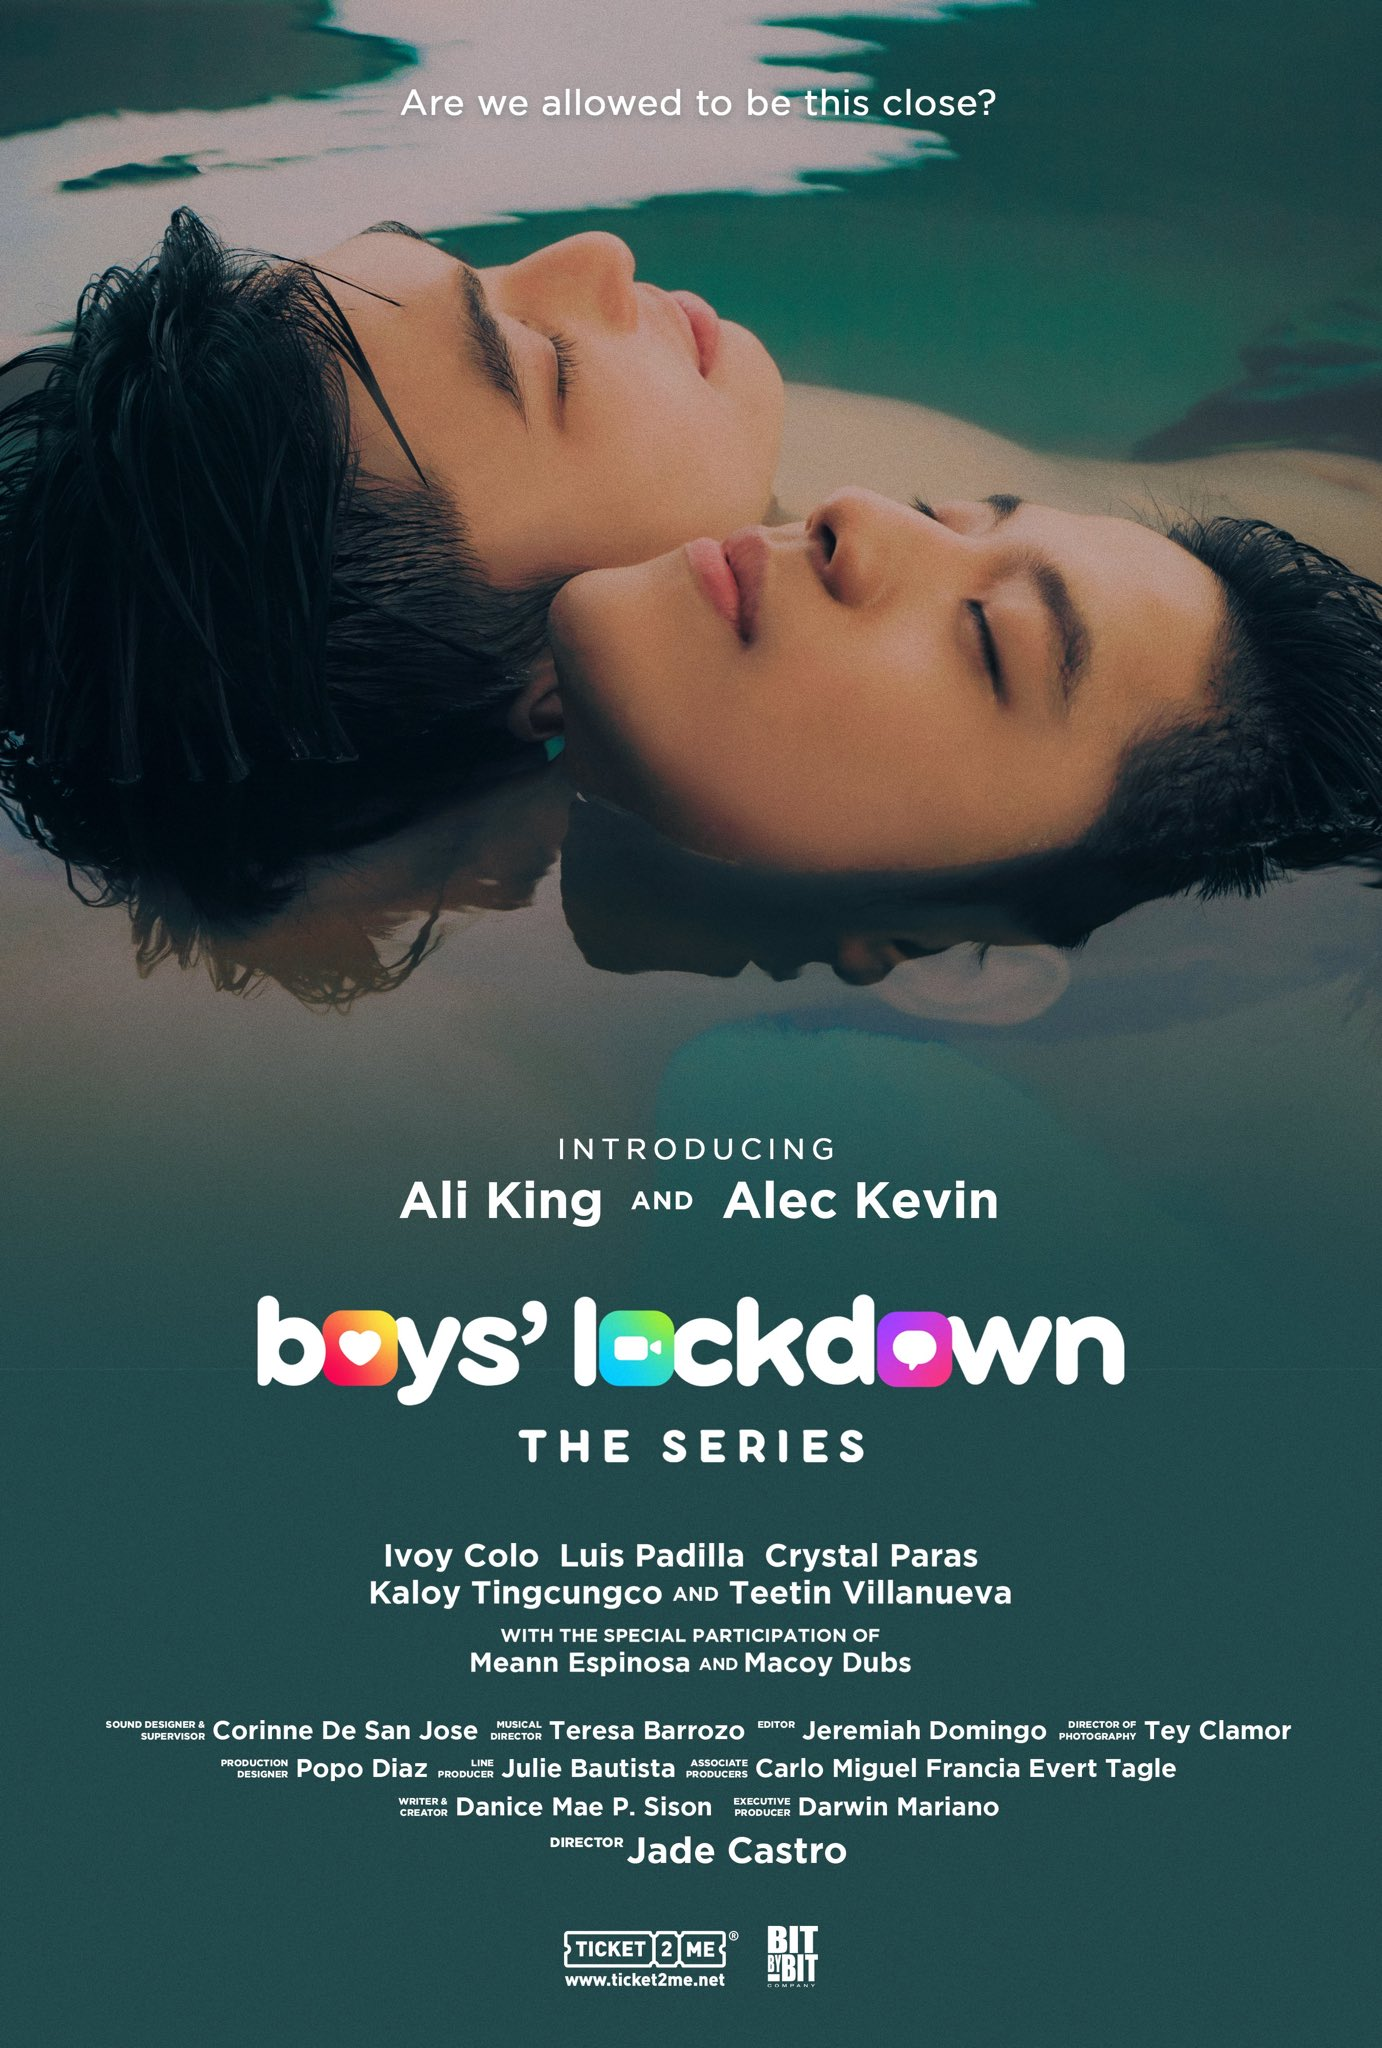 BOYS' LOCKDOWN